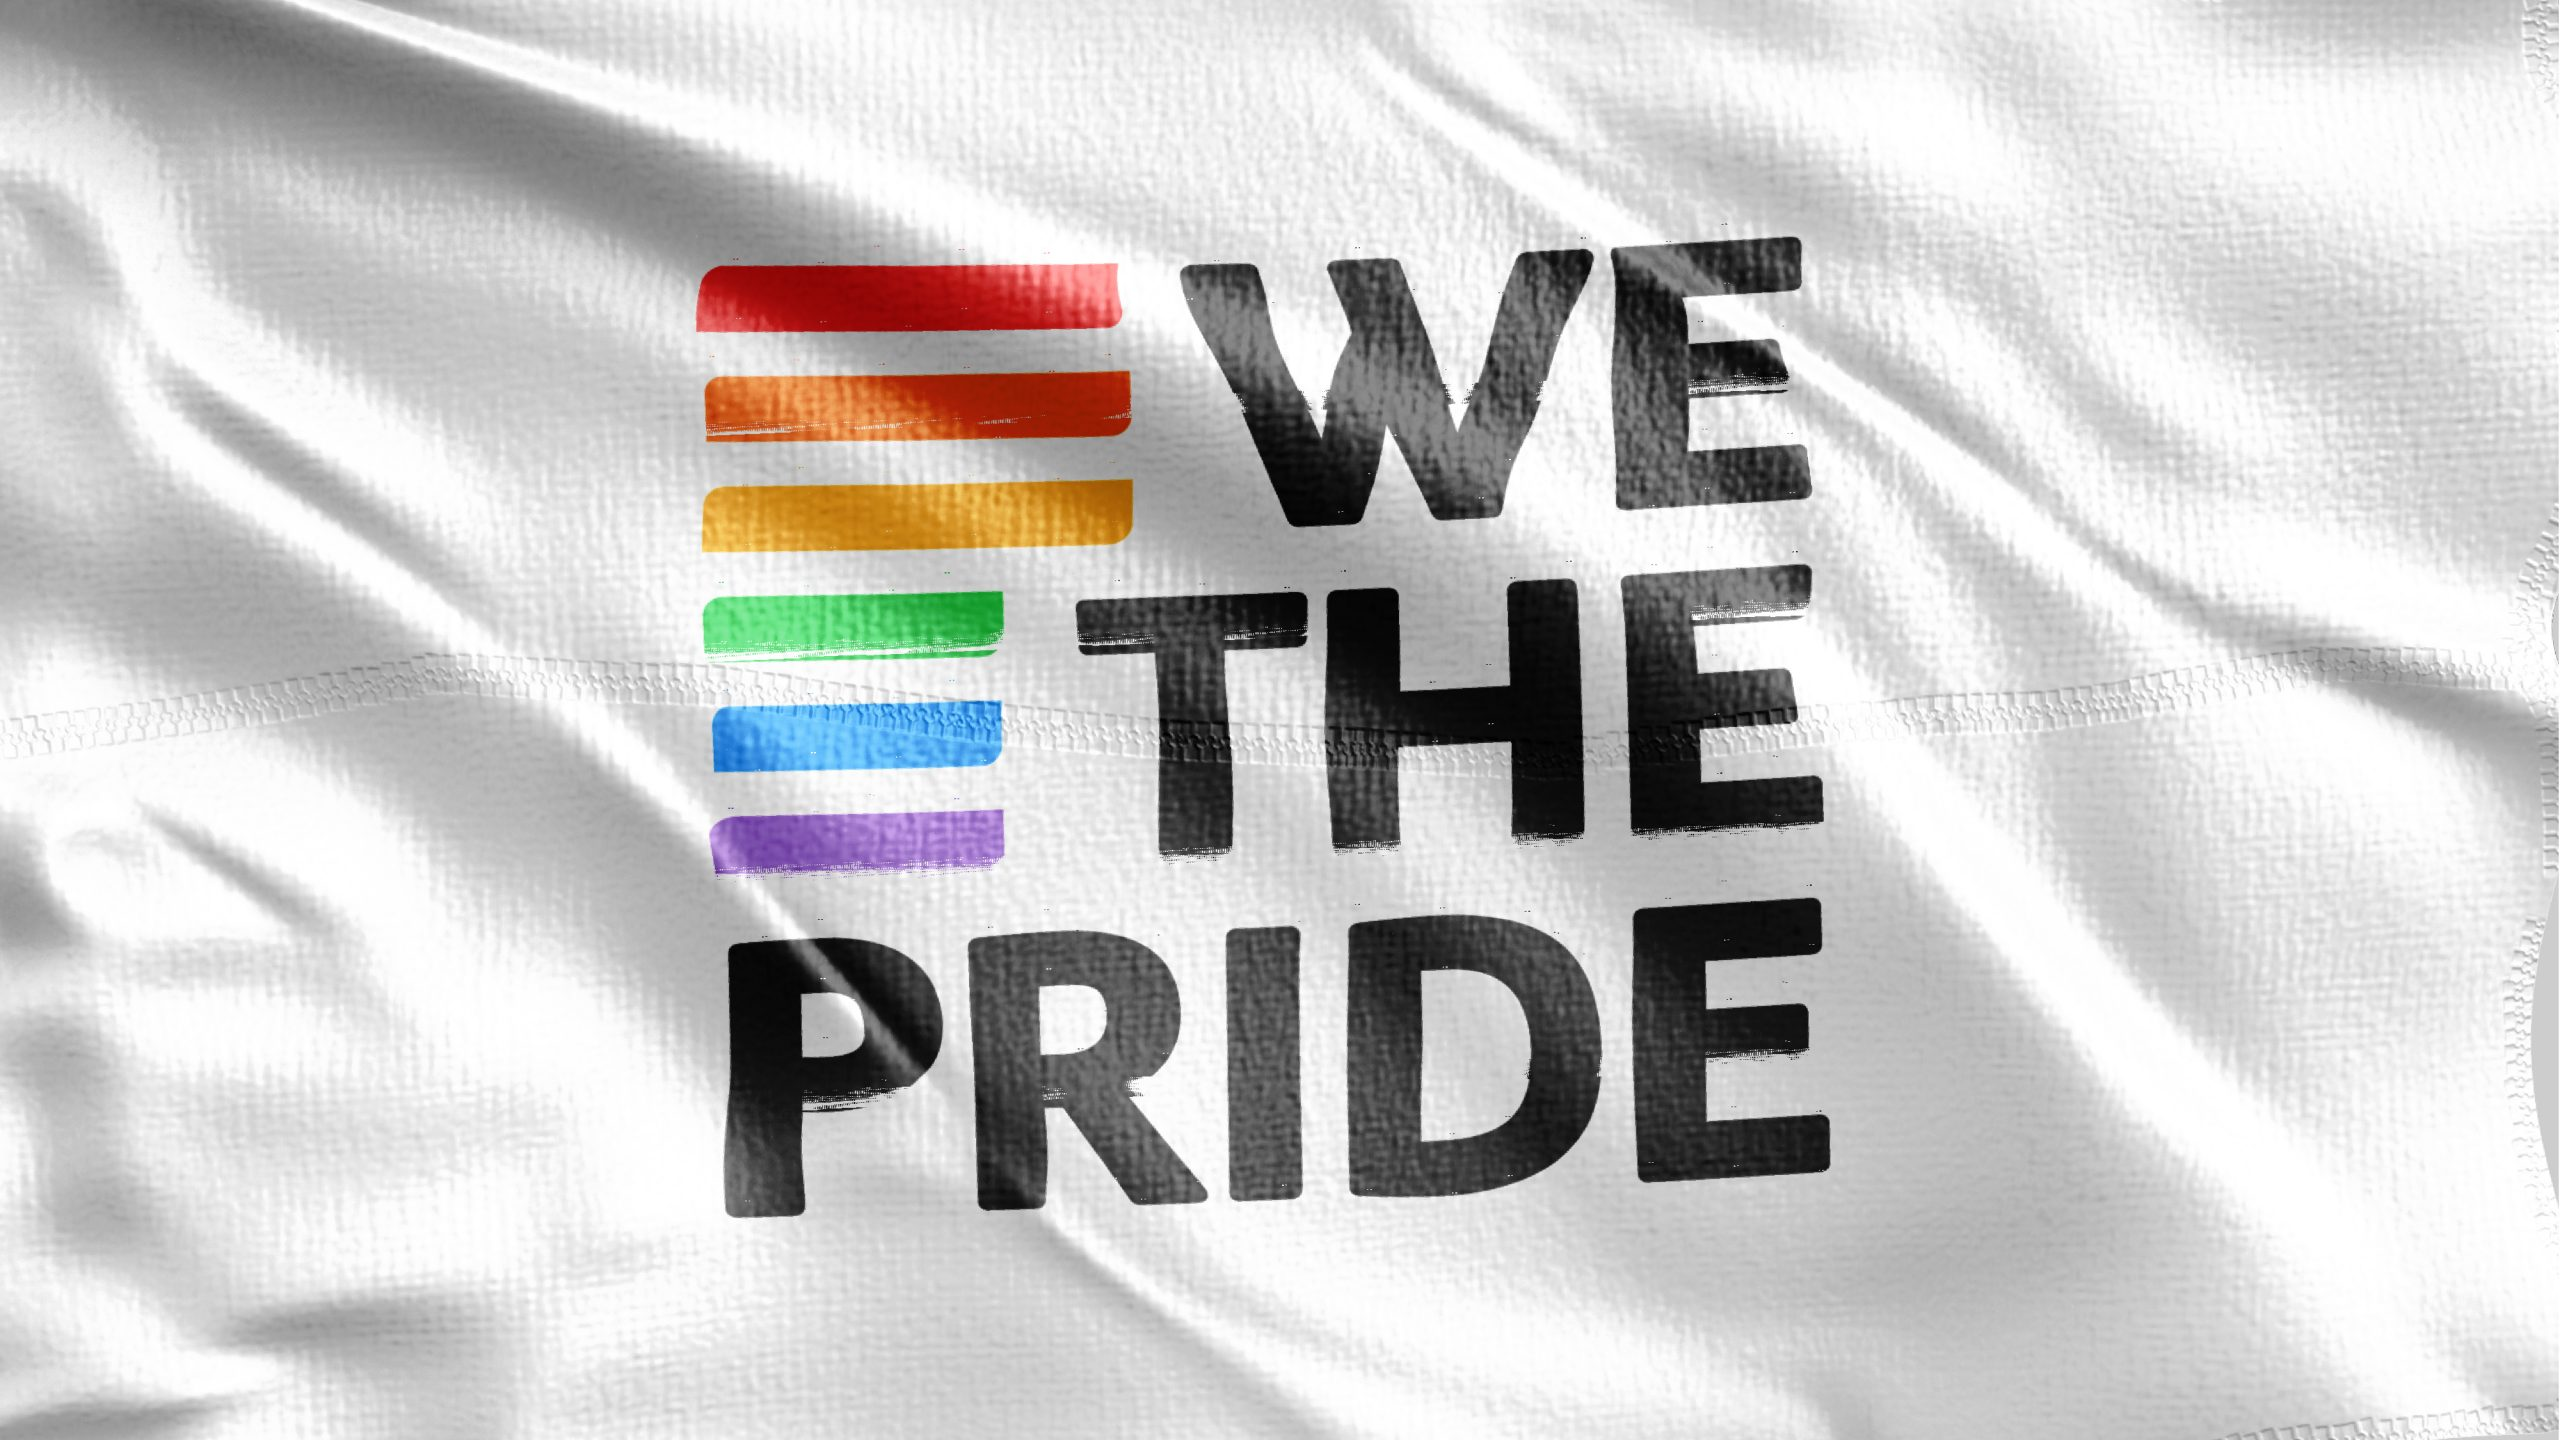 We The Pride